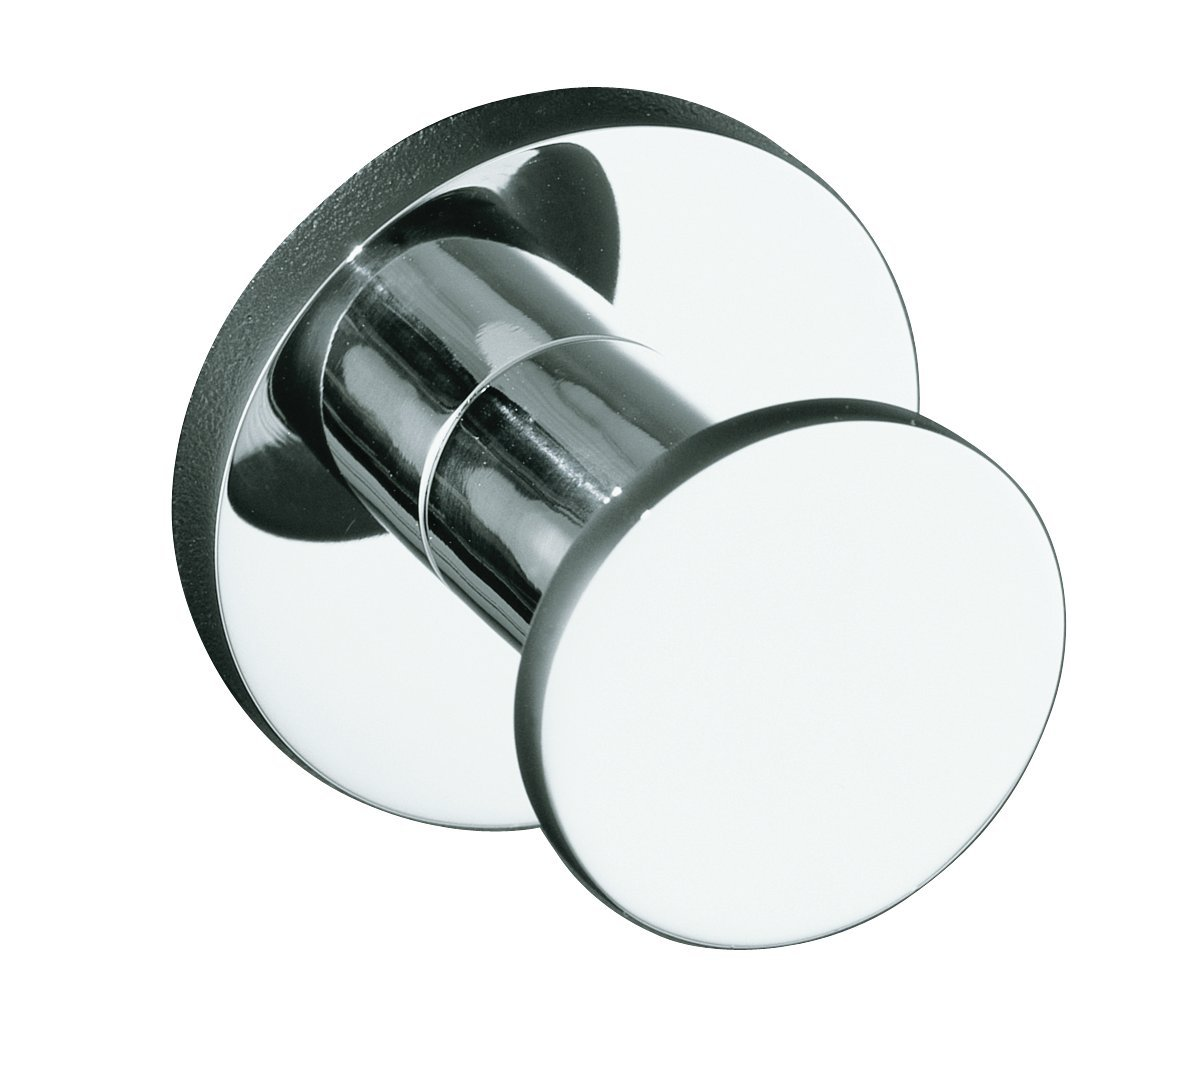 KOHLER K-14458-CP Stillness Robe Hook, Polished Chrome by Kohler (Image #2)